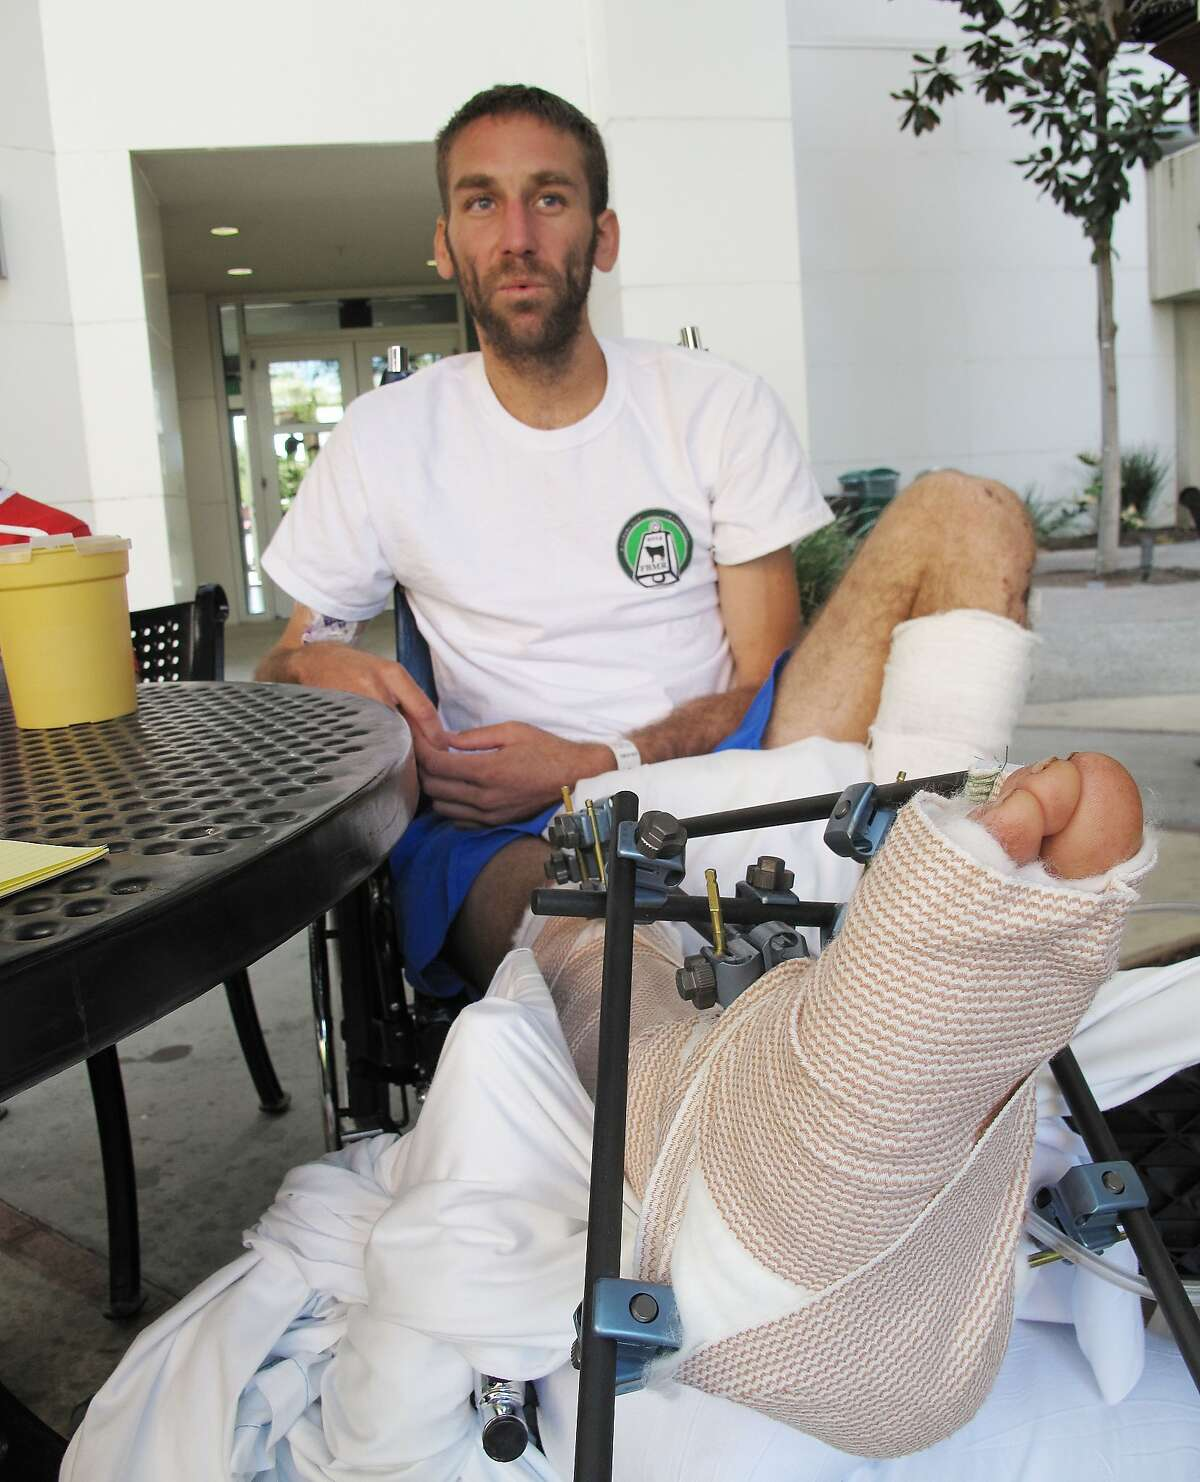 Gregg Hein, who broke his leg on a solo hike in the Sierra Nevada mountains, recovers at the Community Regional Medical Center in Fresno, Calif. on Wednesday, July 16, 2014. The 33-year-old hiker from Clovis, Calif., who was stranded for six days said that survival mode kicked in when he treated his own injury and he sought sustenance by eating crickets and moths, and drinking melting ice. (AP Photo/Scott Smith)